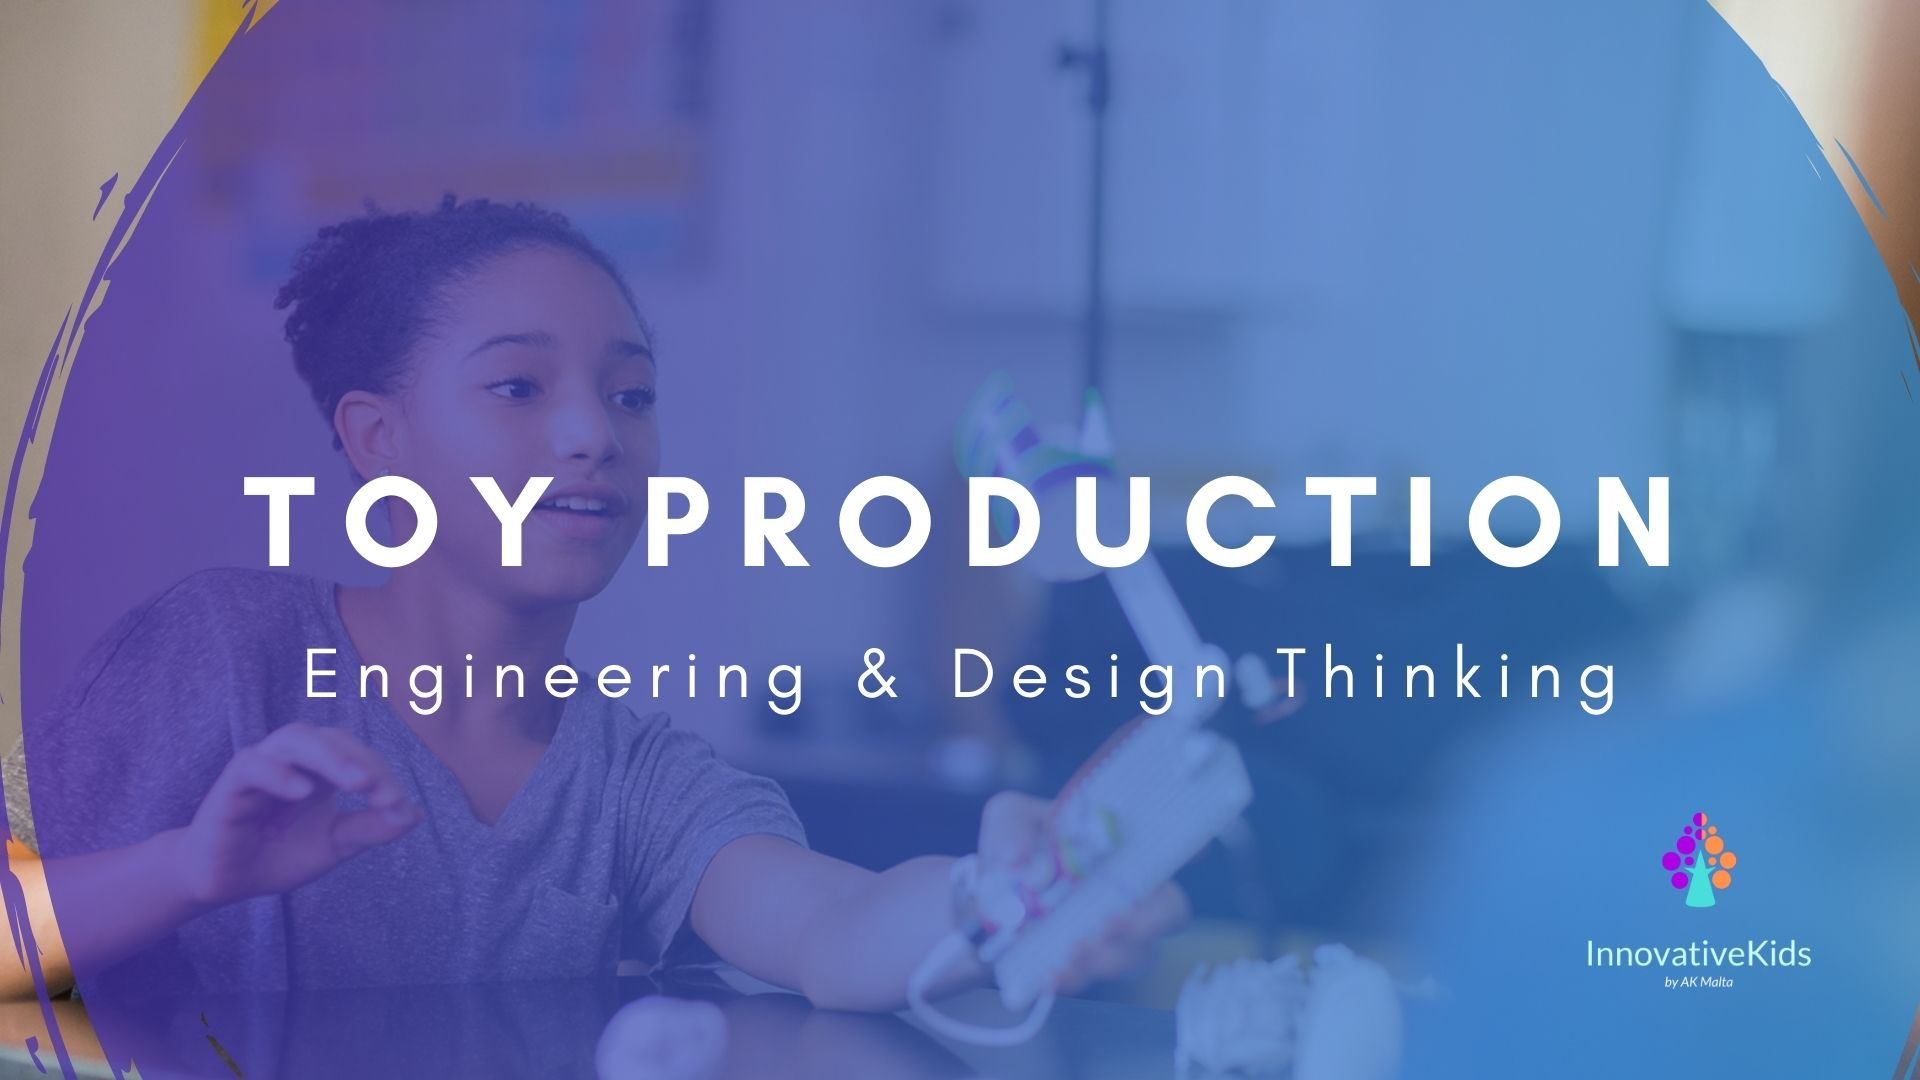 Toy Production course 2021 by InnovativeKids